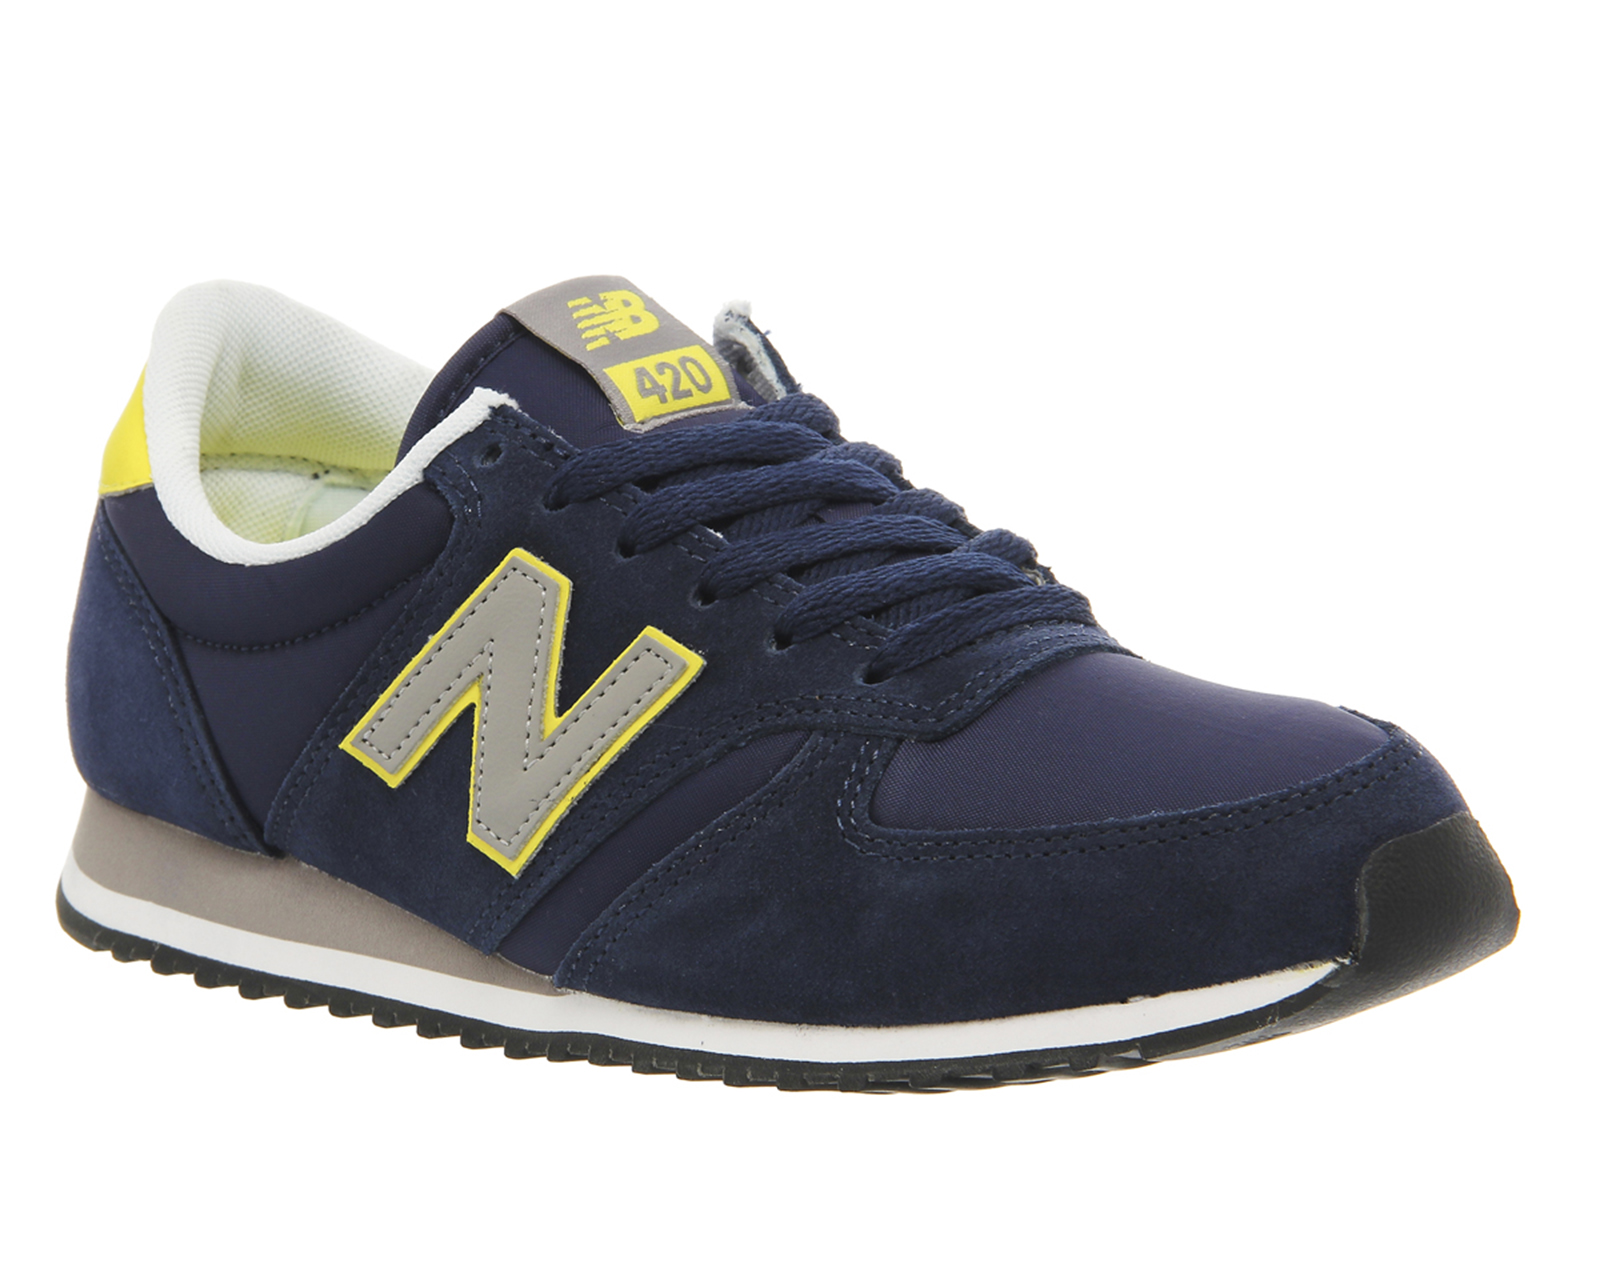 mens new balance u420 trainers navy yellow grey exclusive. Black Bedroom Furniture Sets. Home Design Ideas